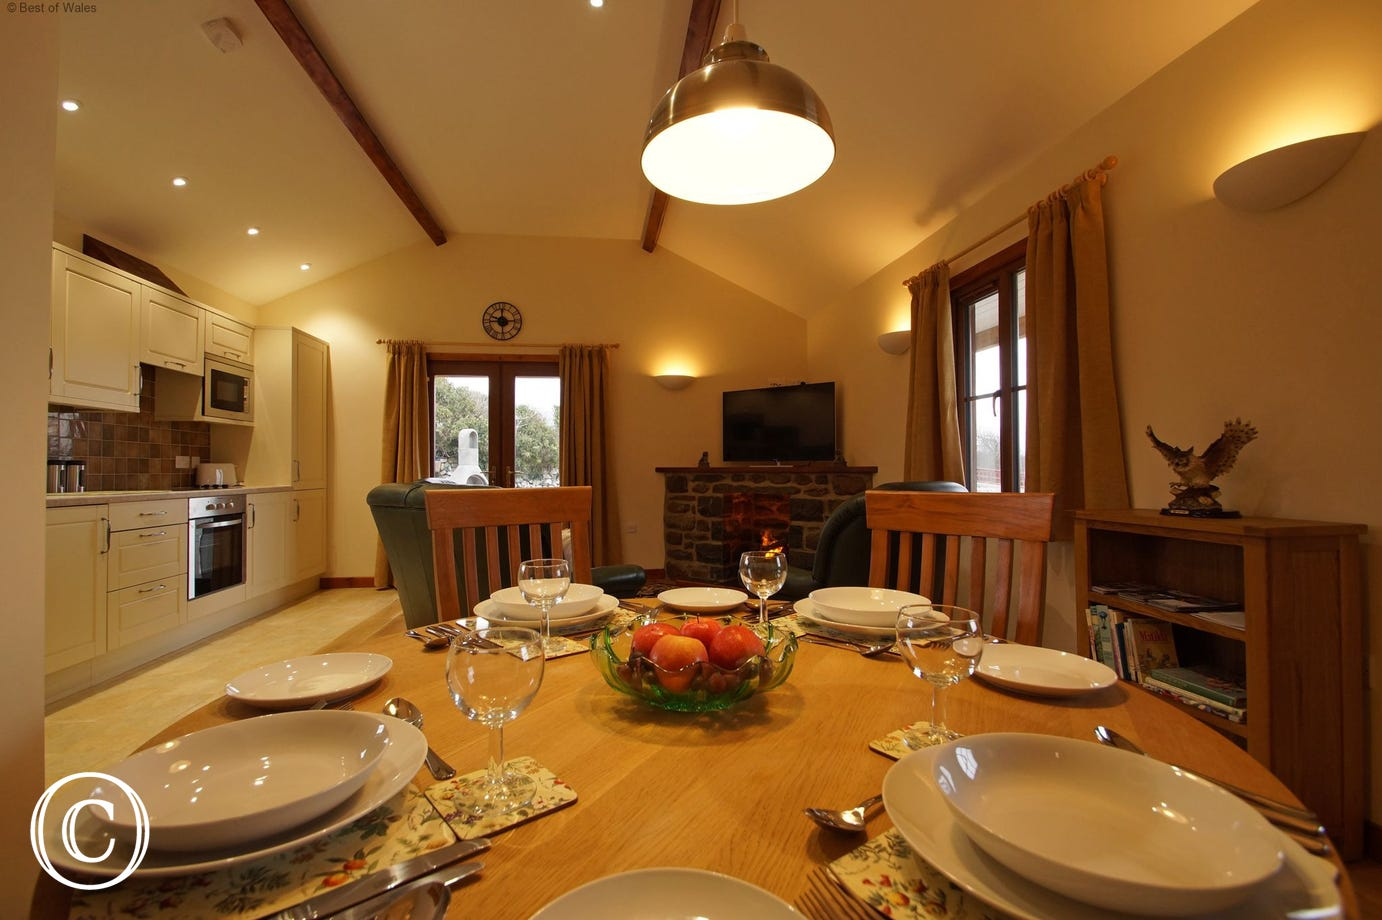 Dining area with a traditional style solid Oak Table and chairs